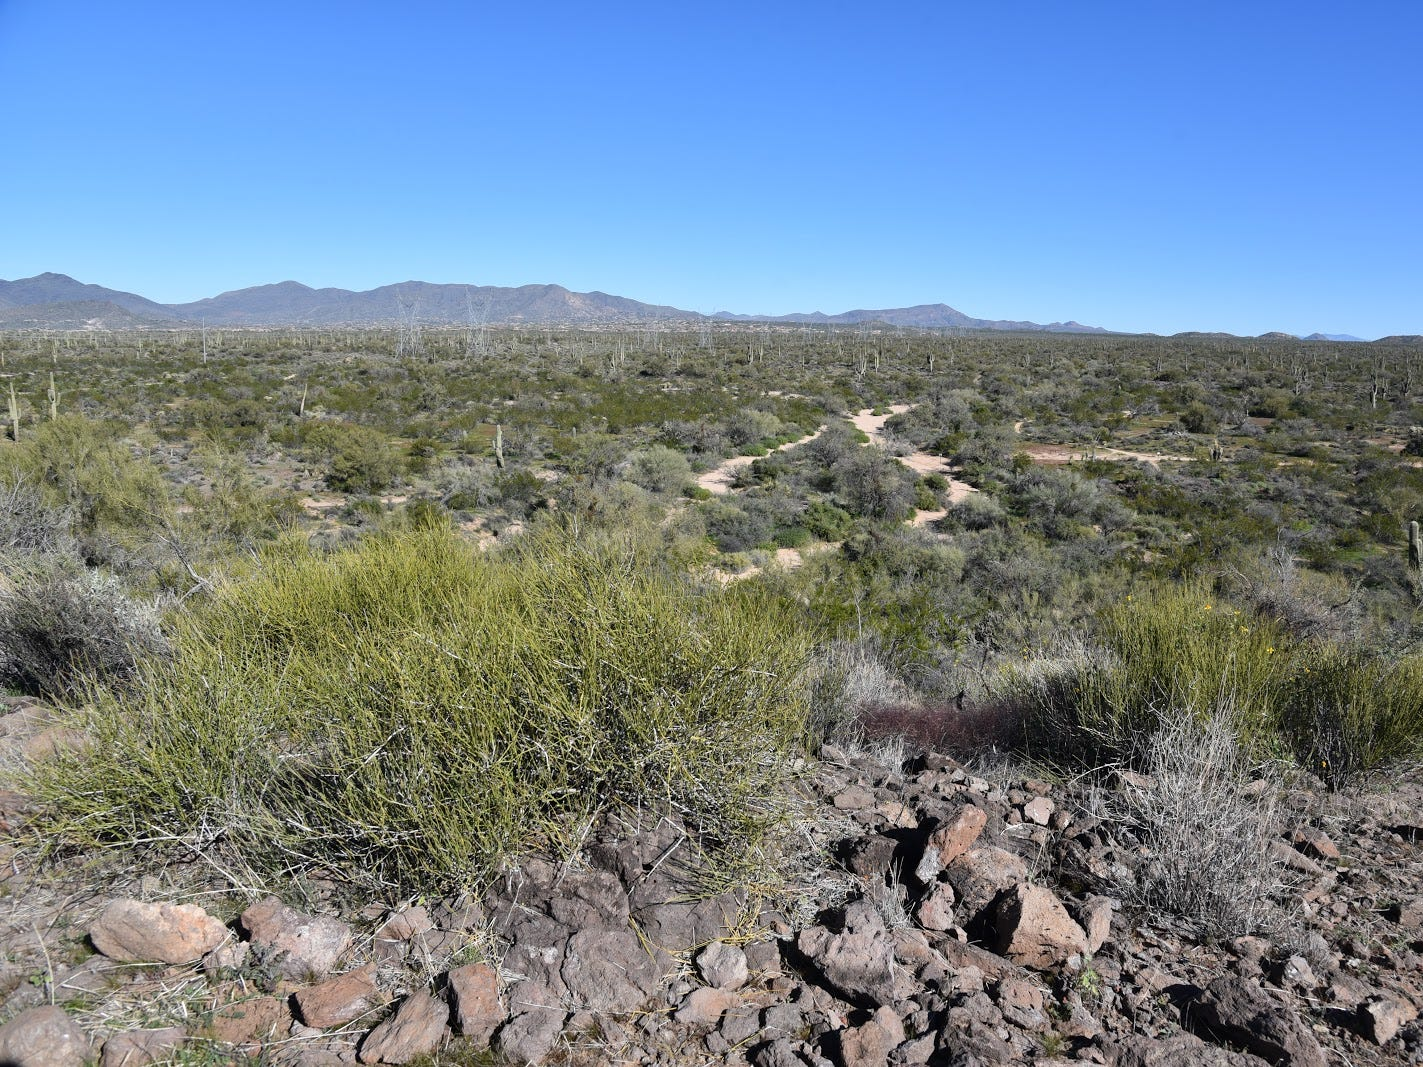 The view from Basalt Ridge Overlook in McDowell Sonoran Preserve.